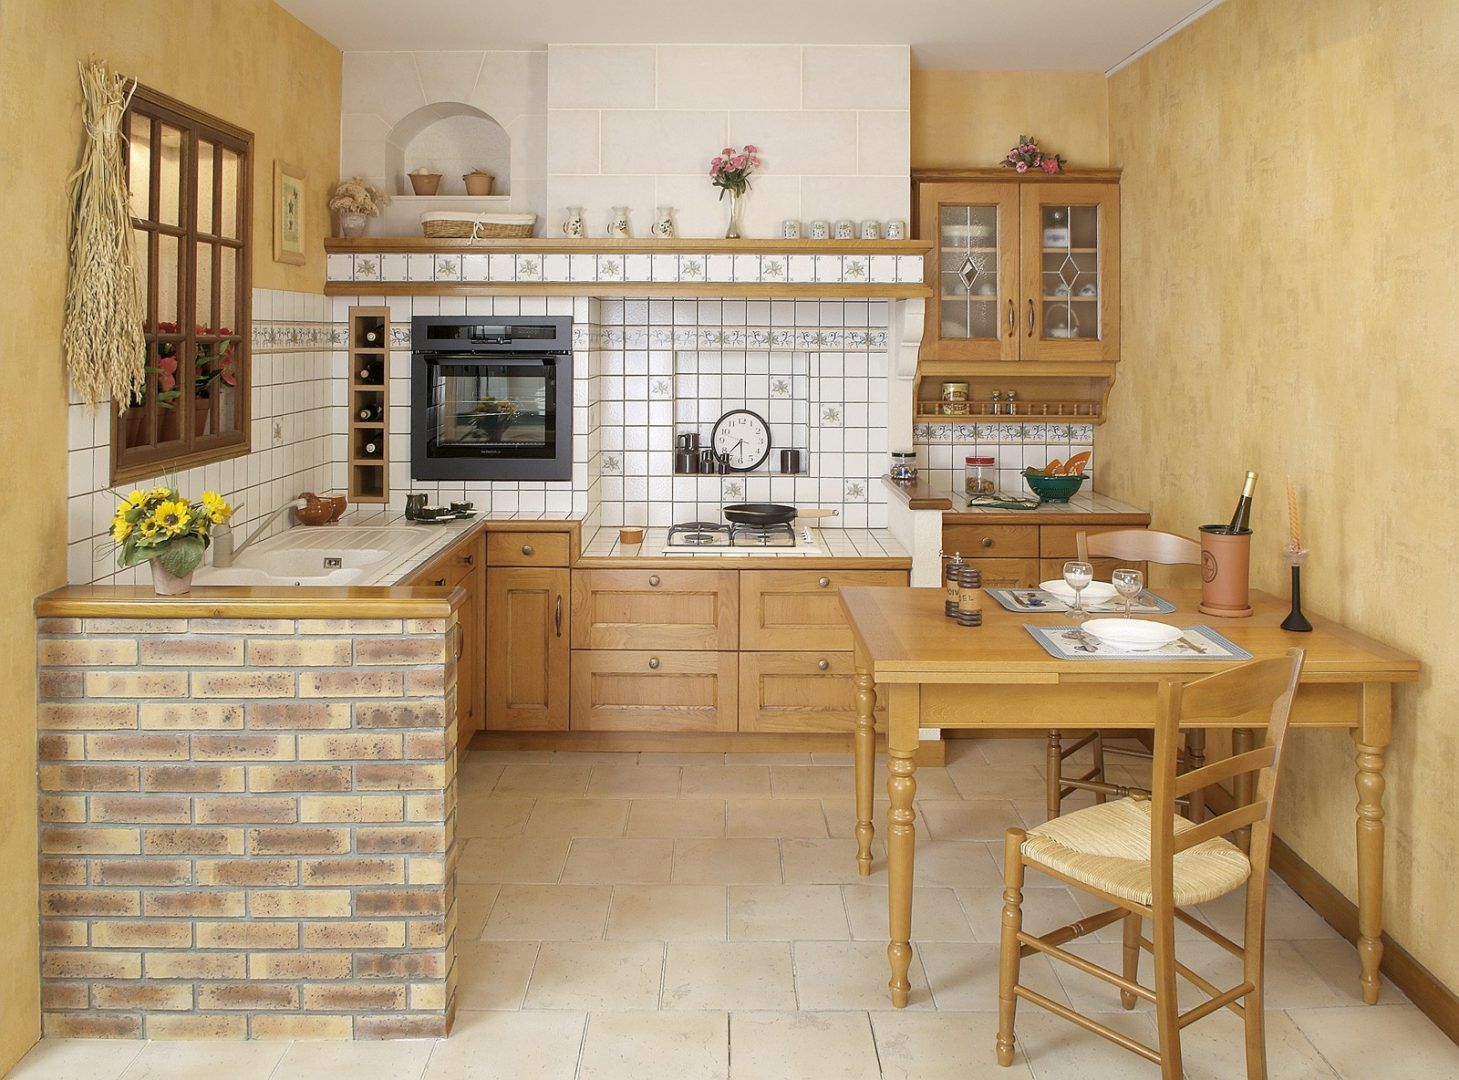 ideas para decorar cocinas r sticas there no place